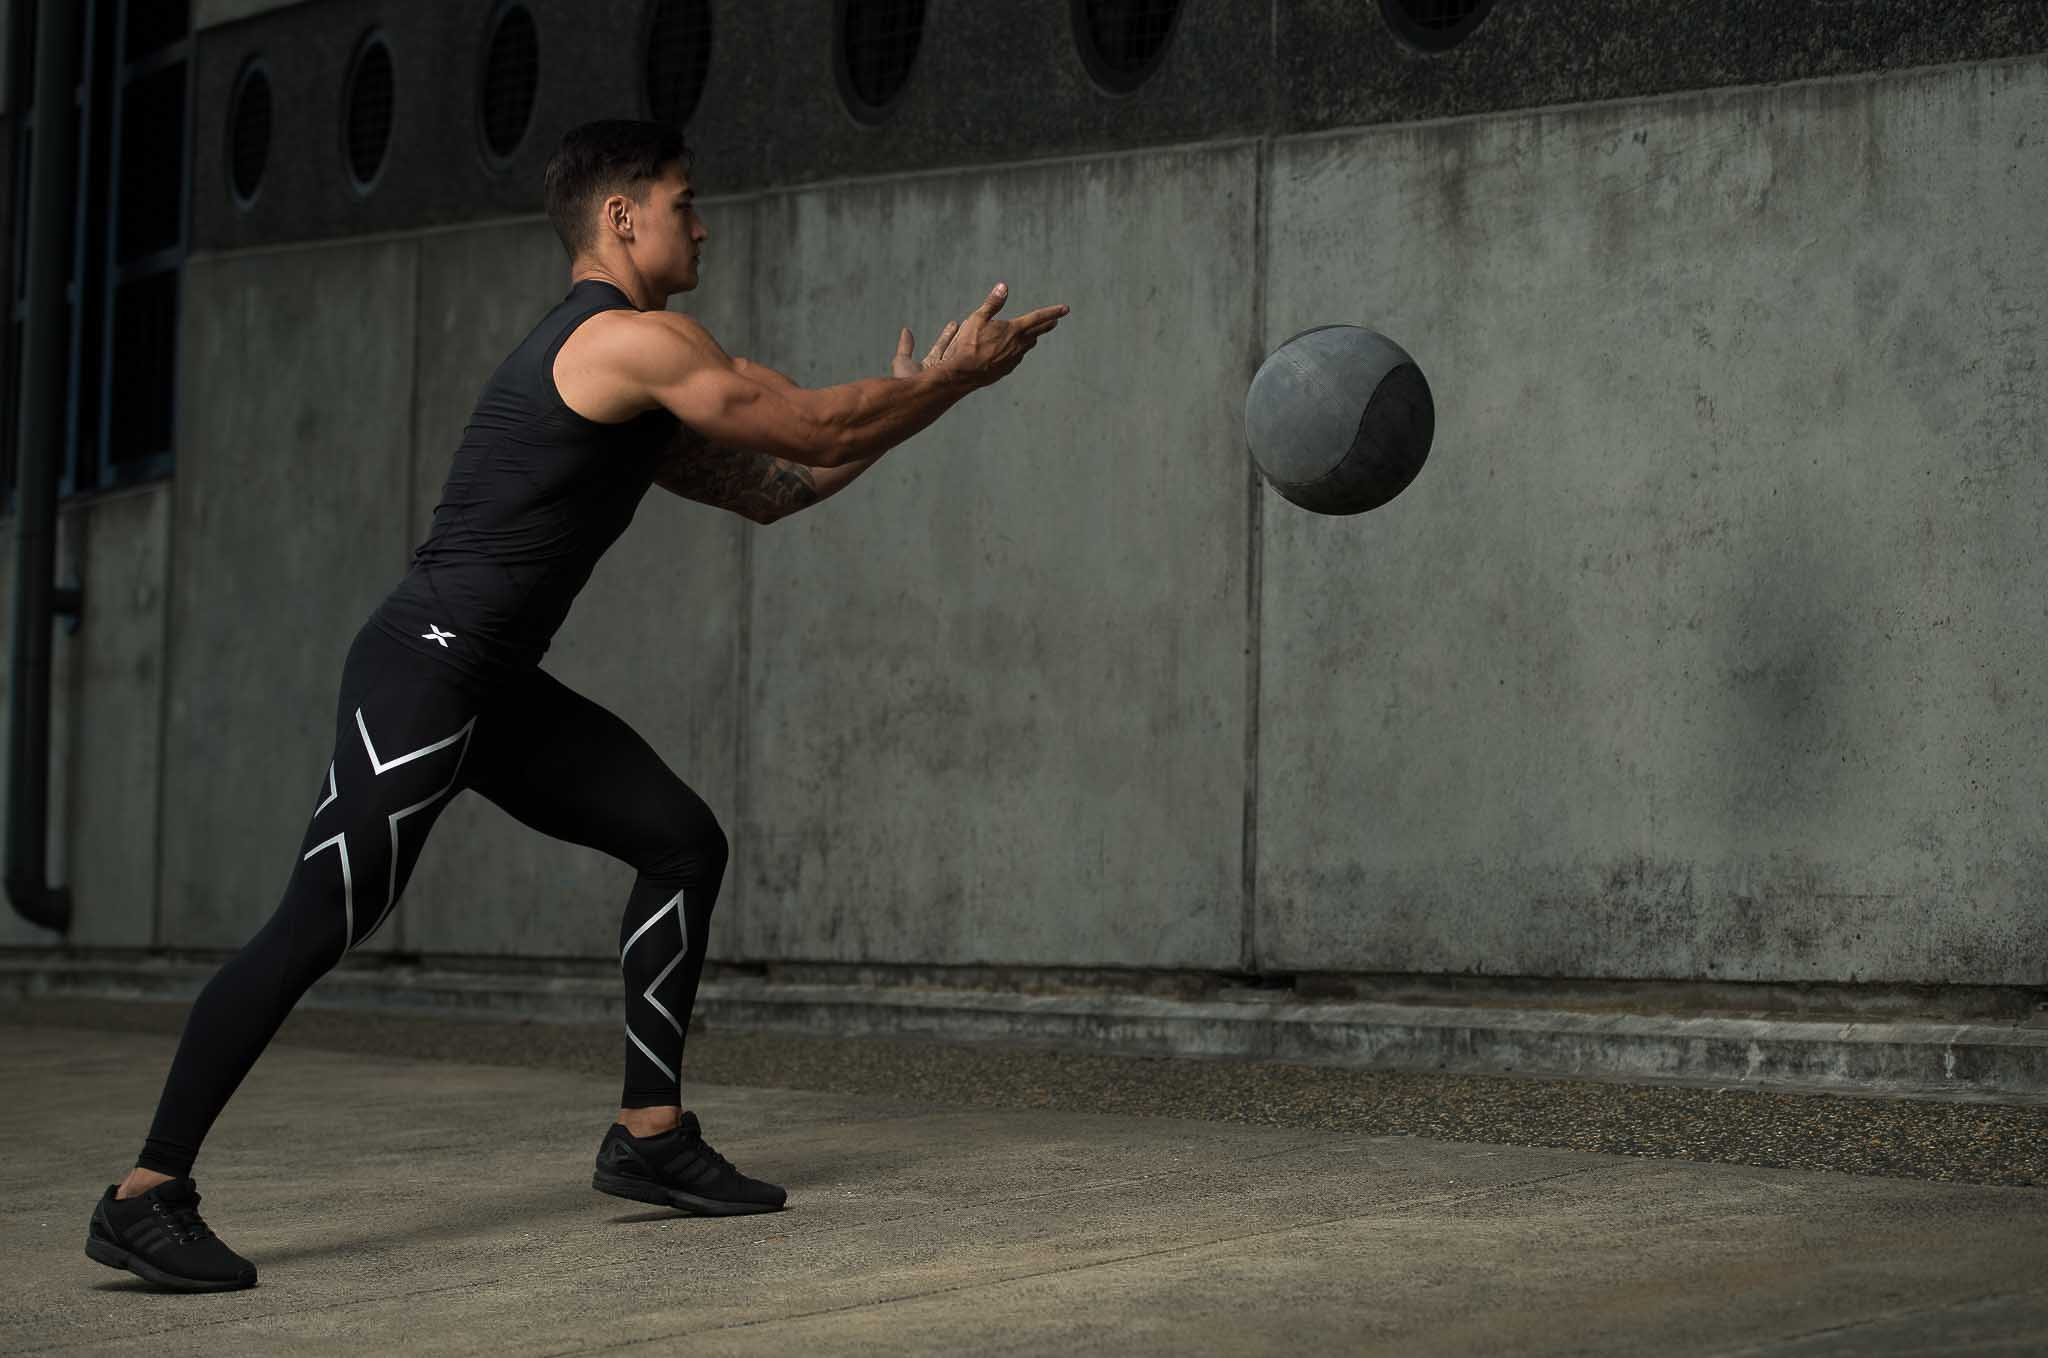 James throwing a medicine ball against the wall